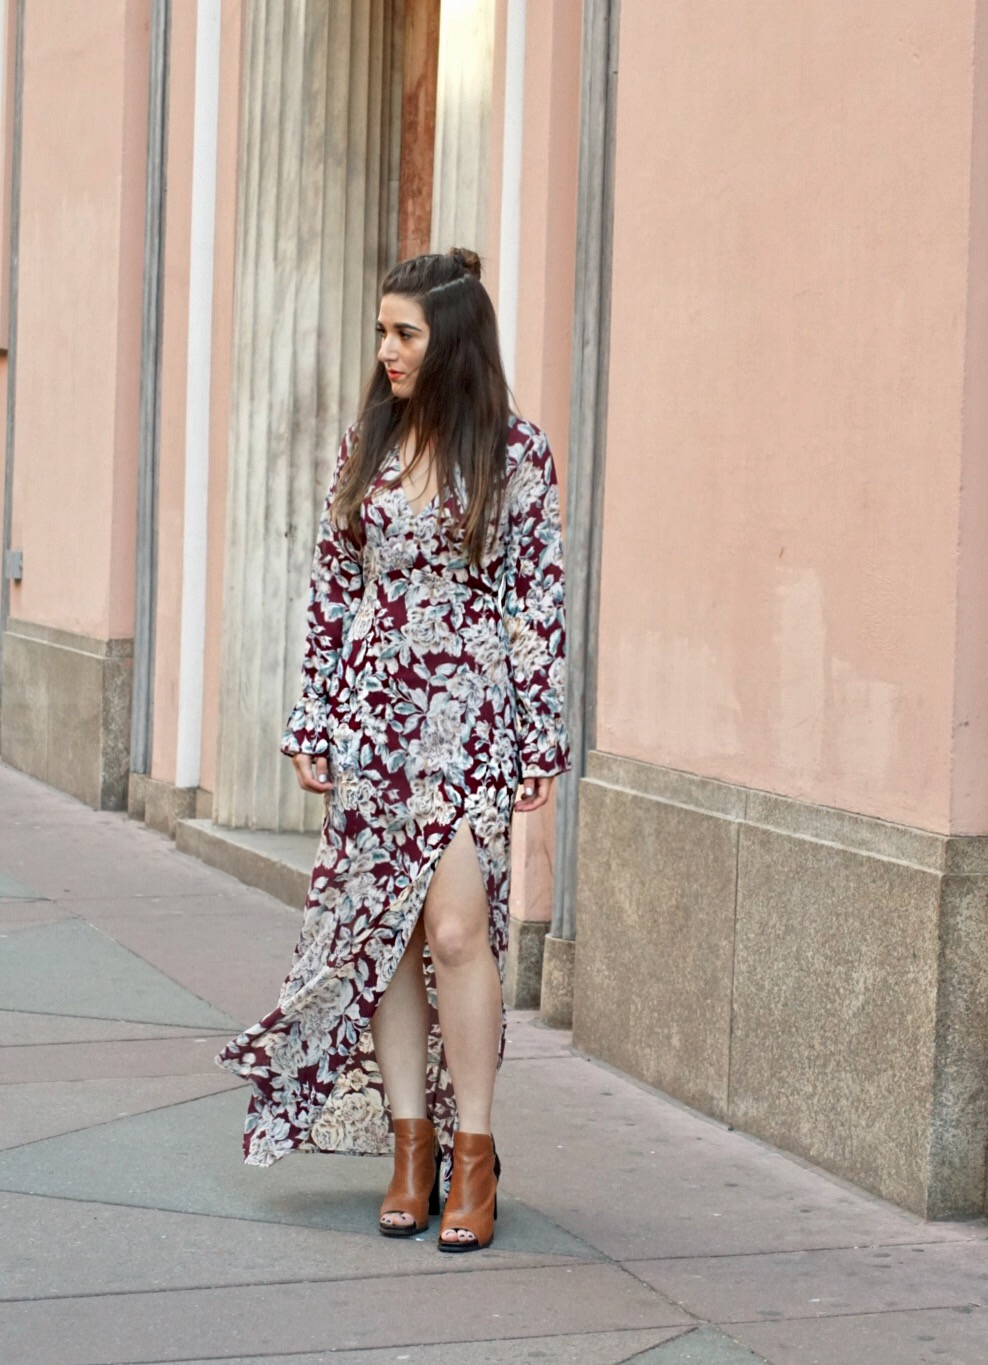 Trescool Floral Dress How To Stay Productive When Working From Home Esther Santer Fashion Blog NYC Street Style Blogger Outfit OOTD Trendy Pretty Spring Beautiful Shoes M4D3 Topknot Braid Online Shopping Photoshoot Inspiration Wearing Inspo Girl Women.JPG